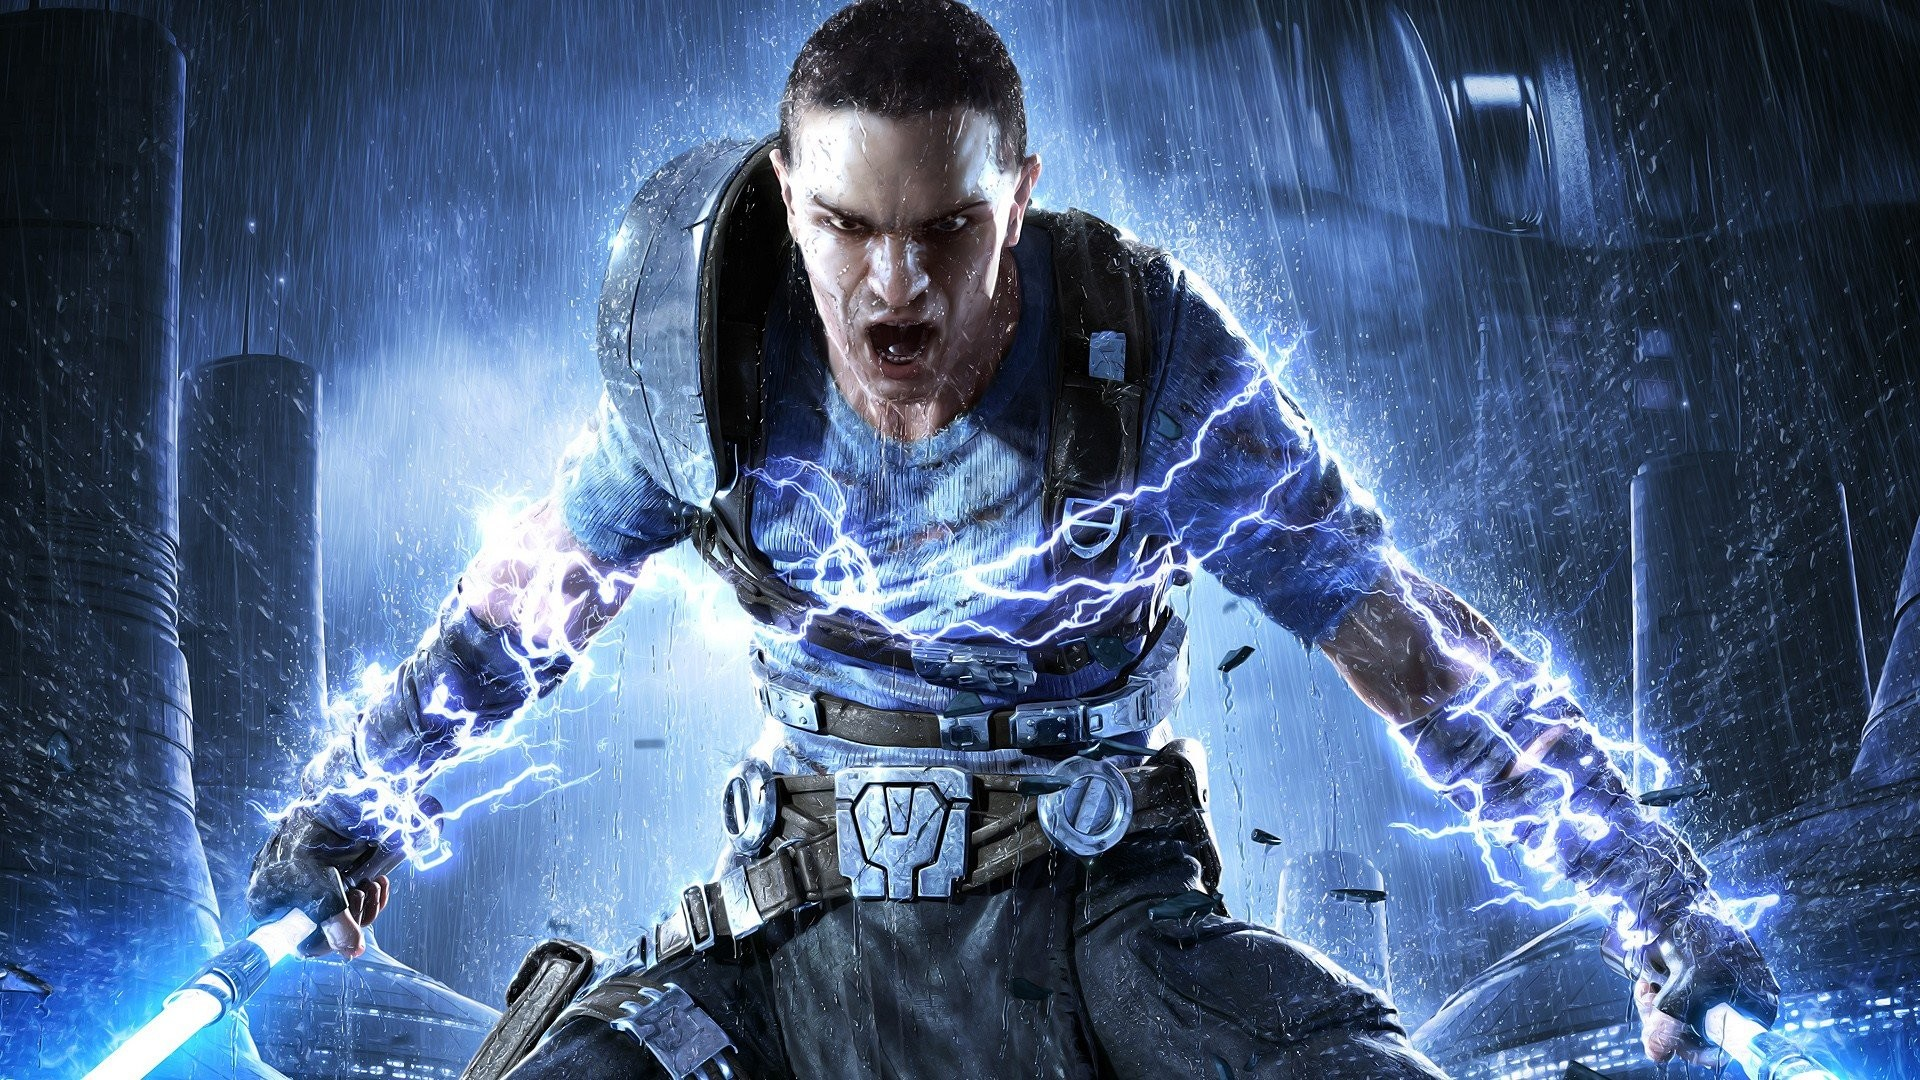 1920x1080 Wars video games Starkiller The Force Unleashed wallpaper background .